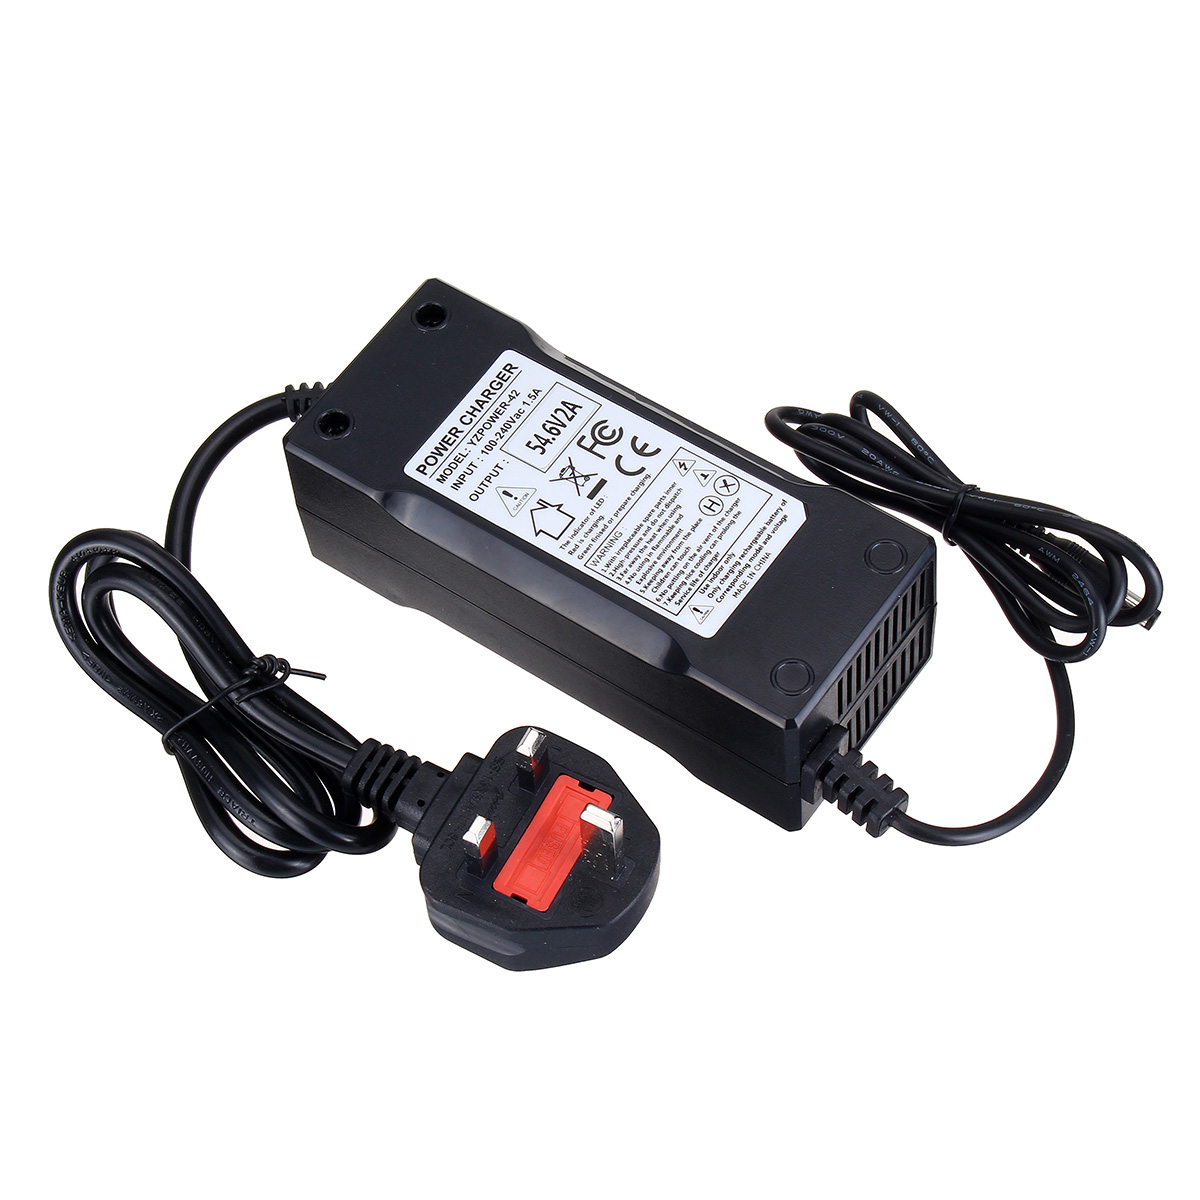 54.6V 5A 18650 Lithium Battery Charger for 48V Electric Bicycle E-bike scooters